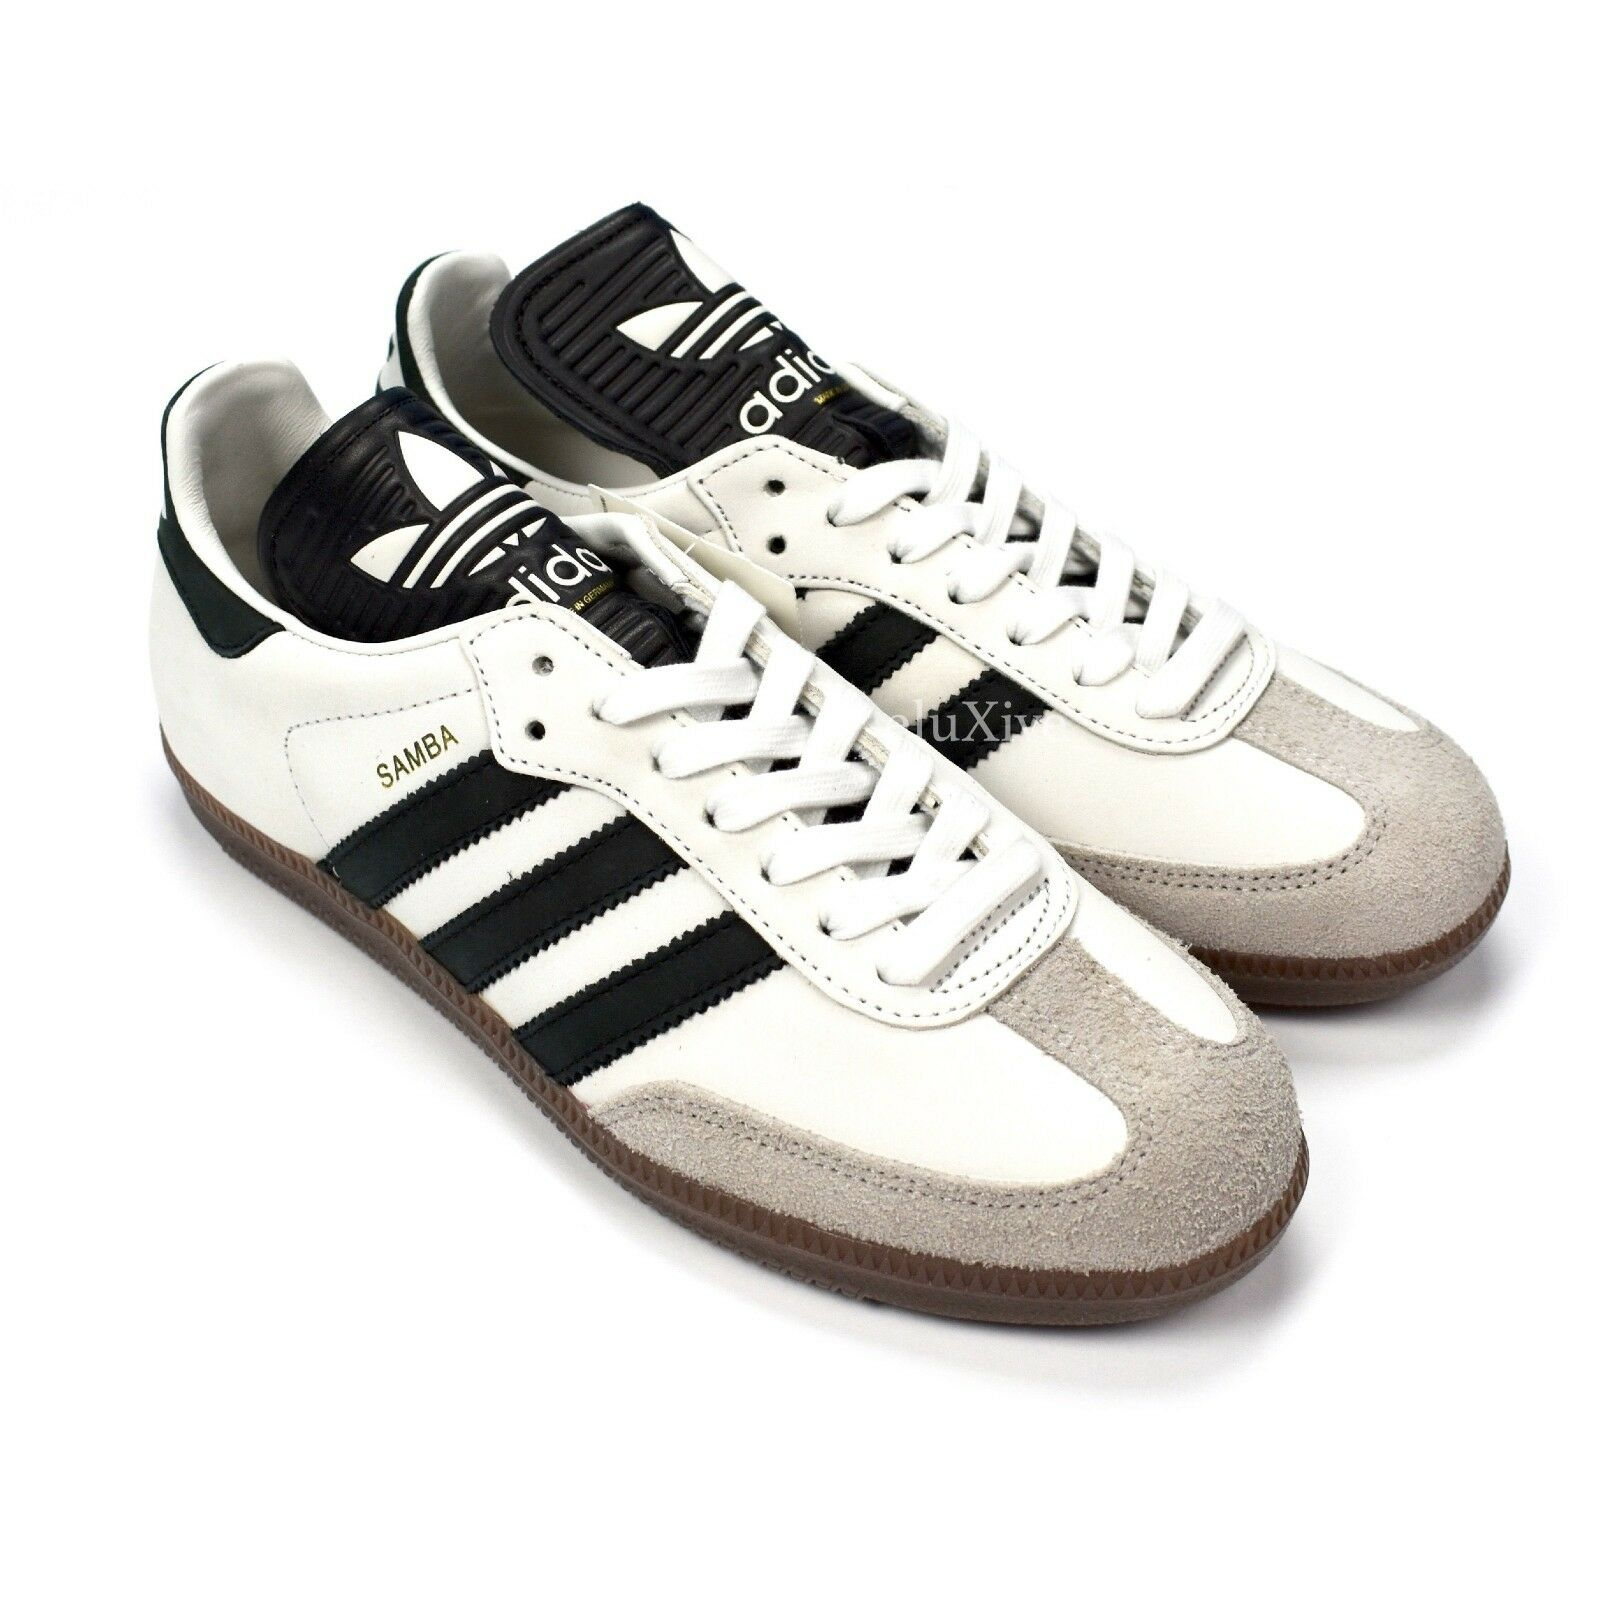 NWT Adidas Samba OG MIG Made in Germany Men's Leather Sneakers 7.5 DS AUTHENTIC